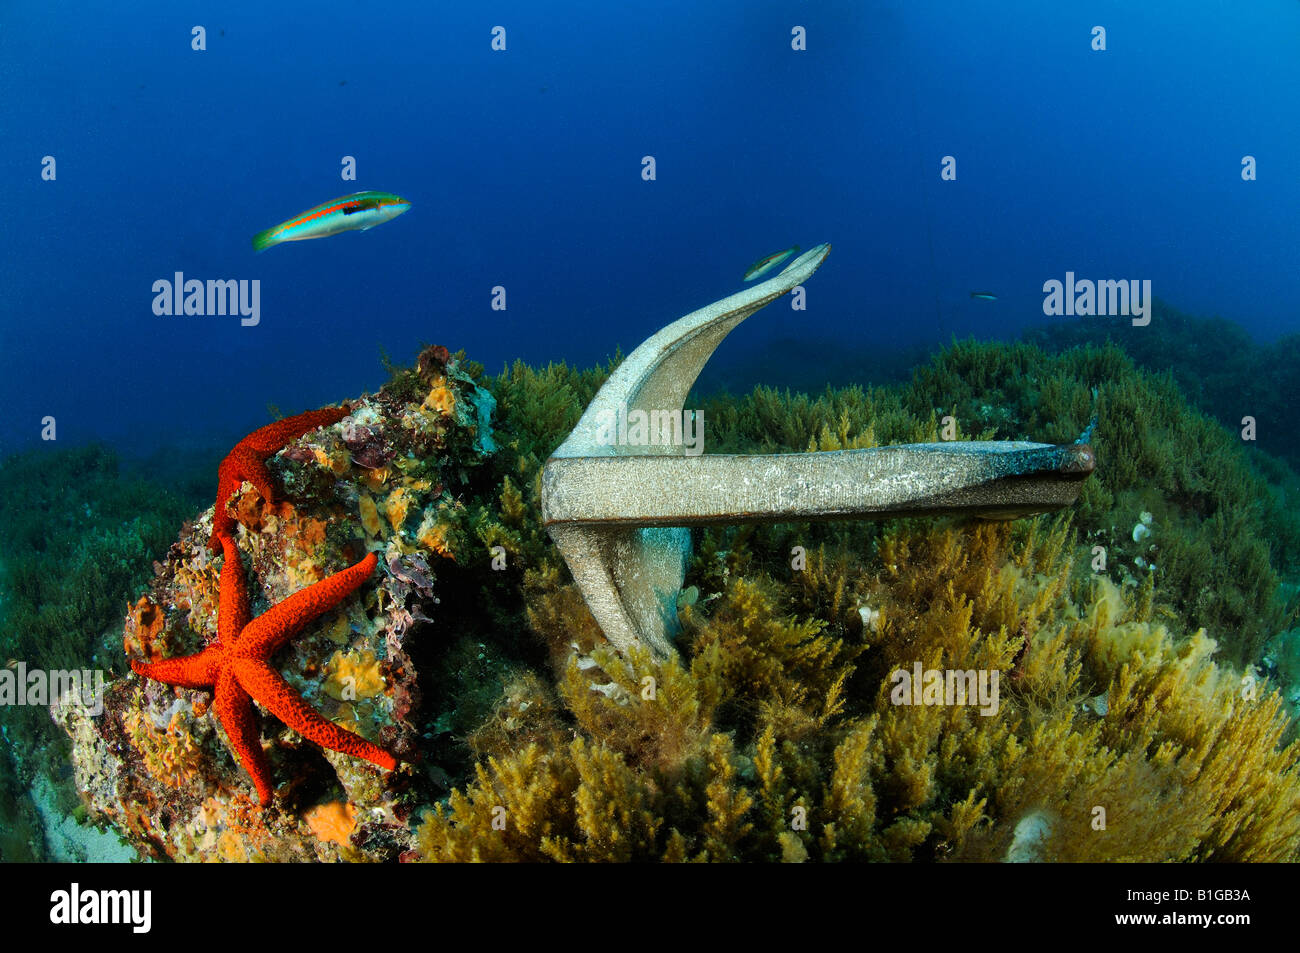 anchor on colorful seafloor - Stock Image